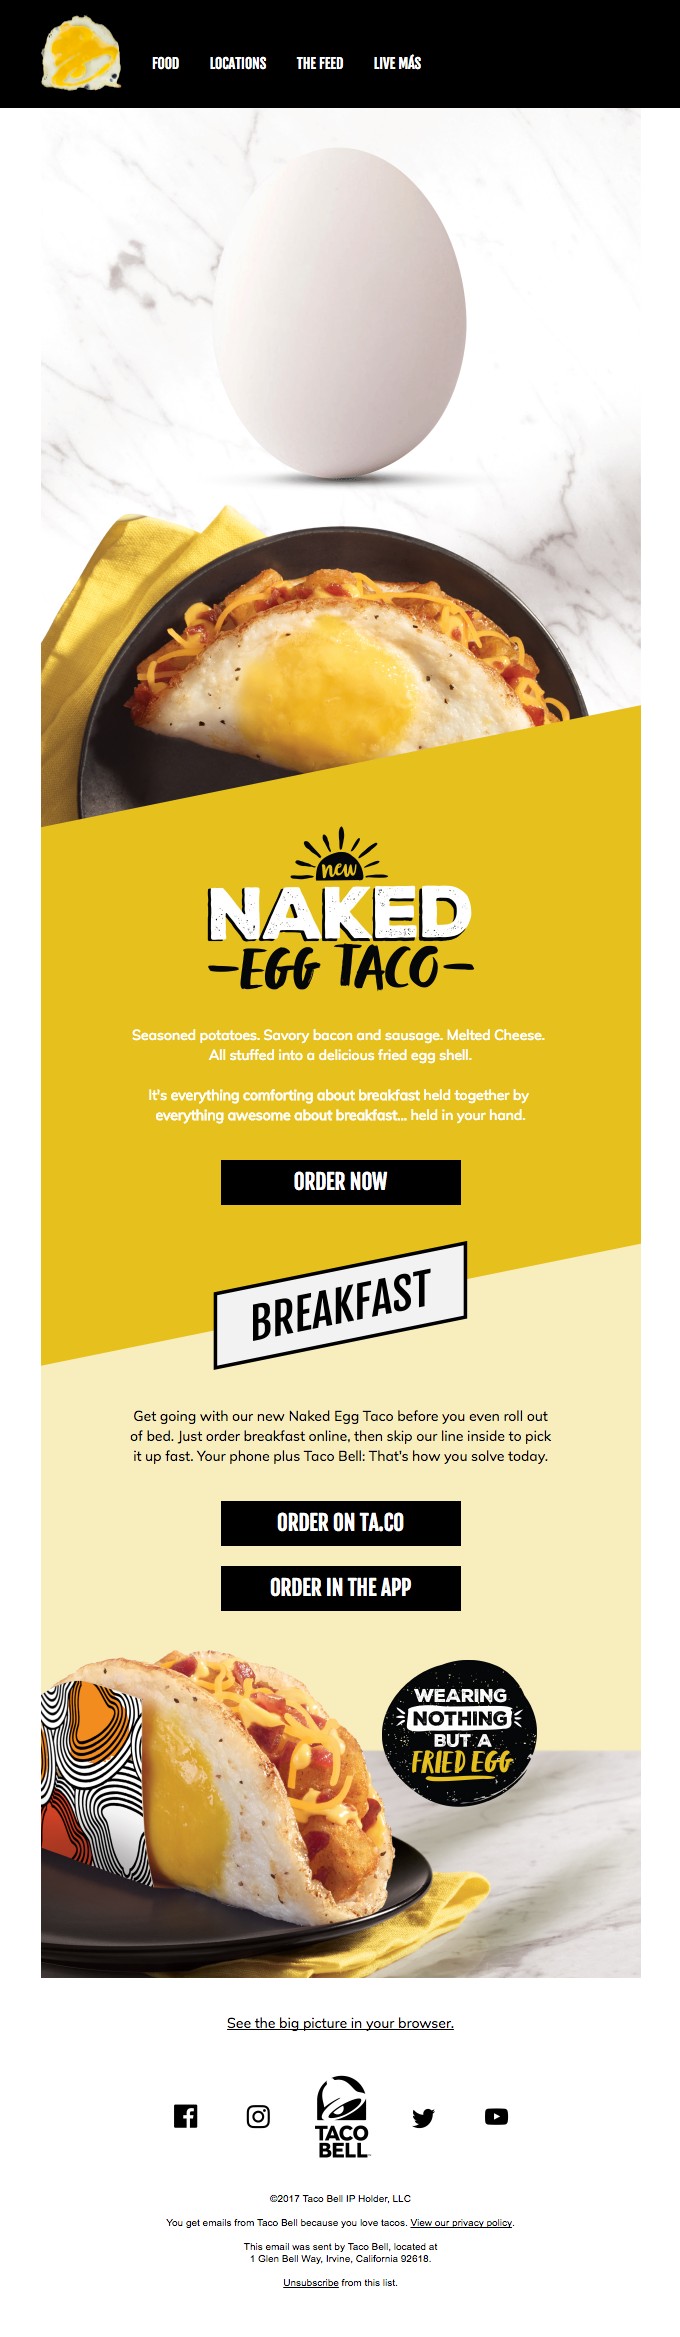 Taco Bell Emails on Really Good Emails